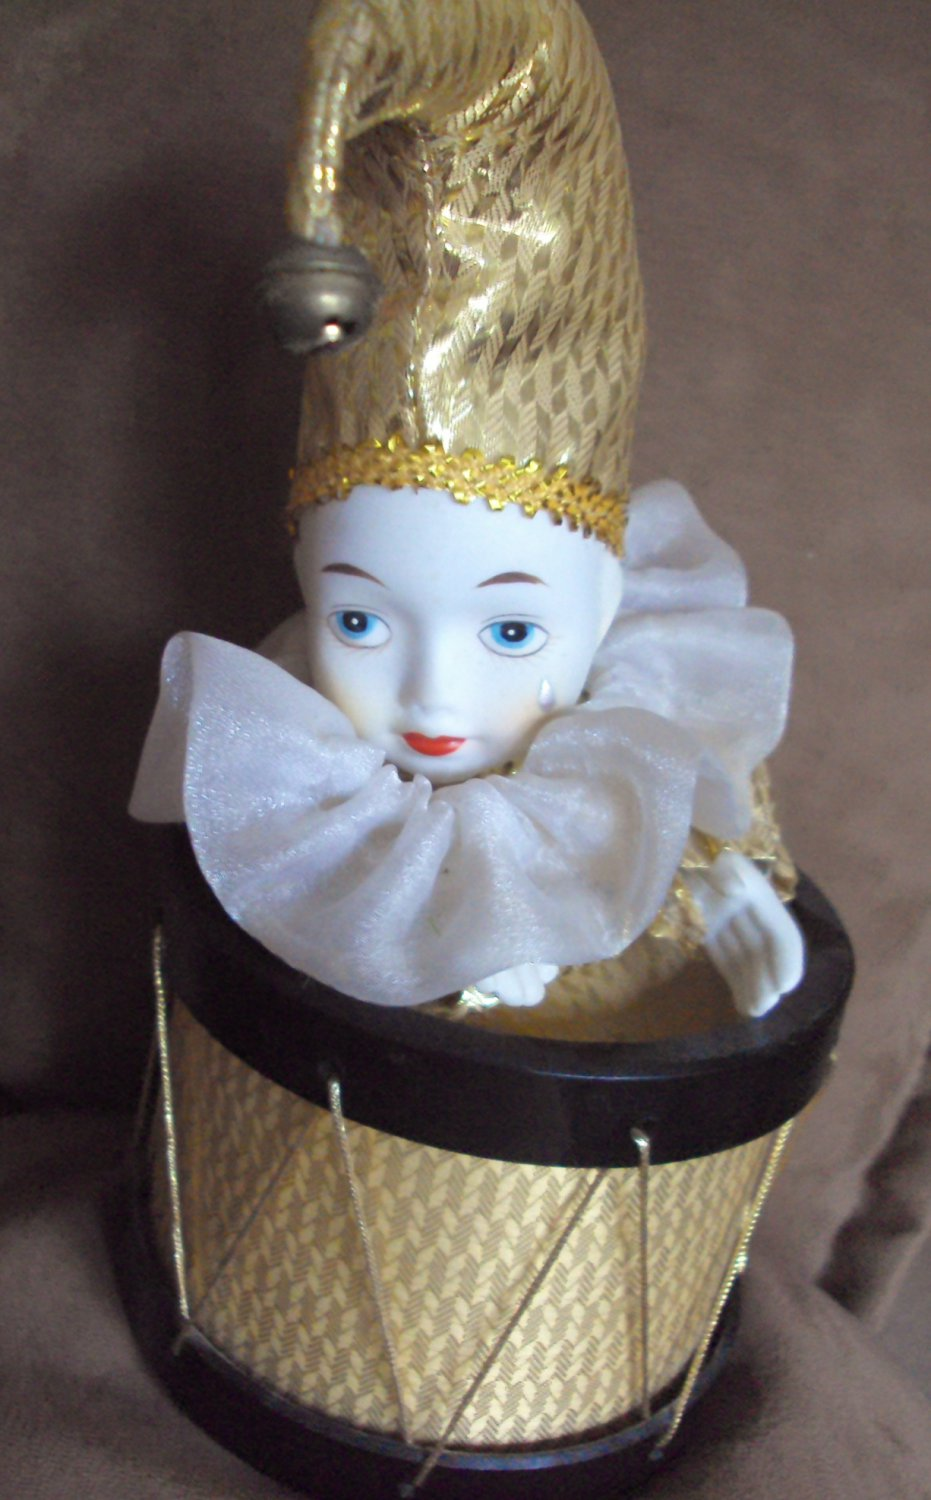 Vintage Musical Weeping Pierrot Porcelain Doll in a Drum Jester Clown Music Box Send in the Clowns